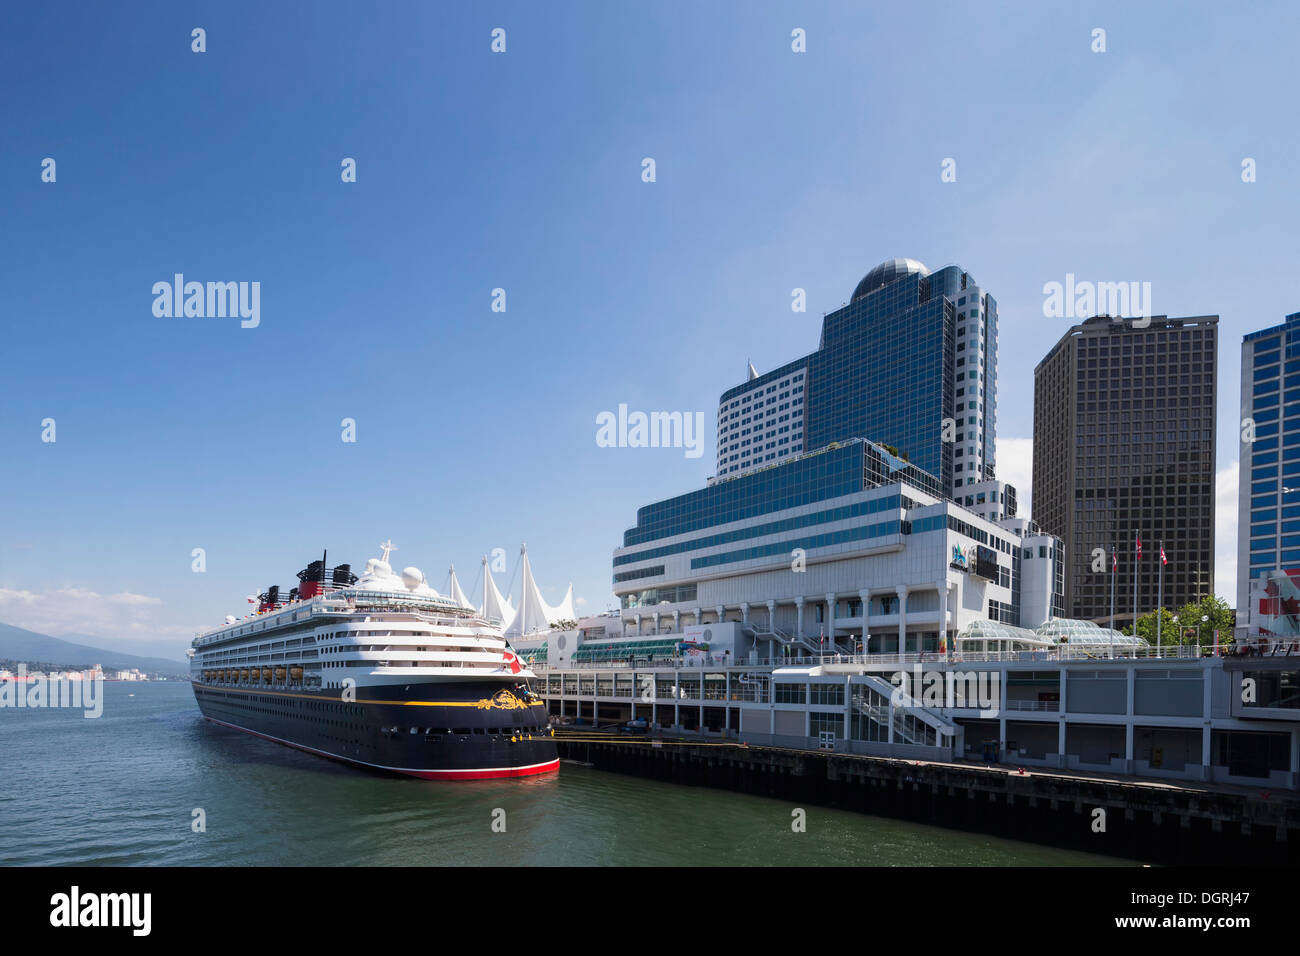 Canada, British Columbia, Vancouver, Cruise liner at Canada Place - Stock Image